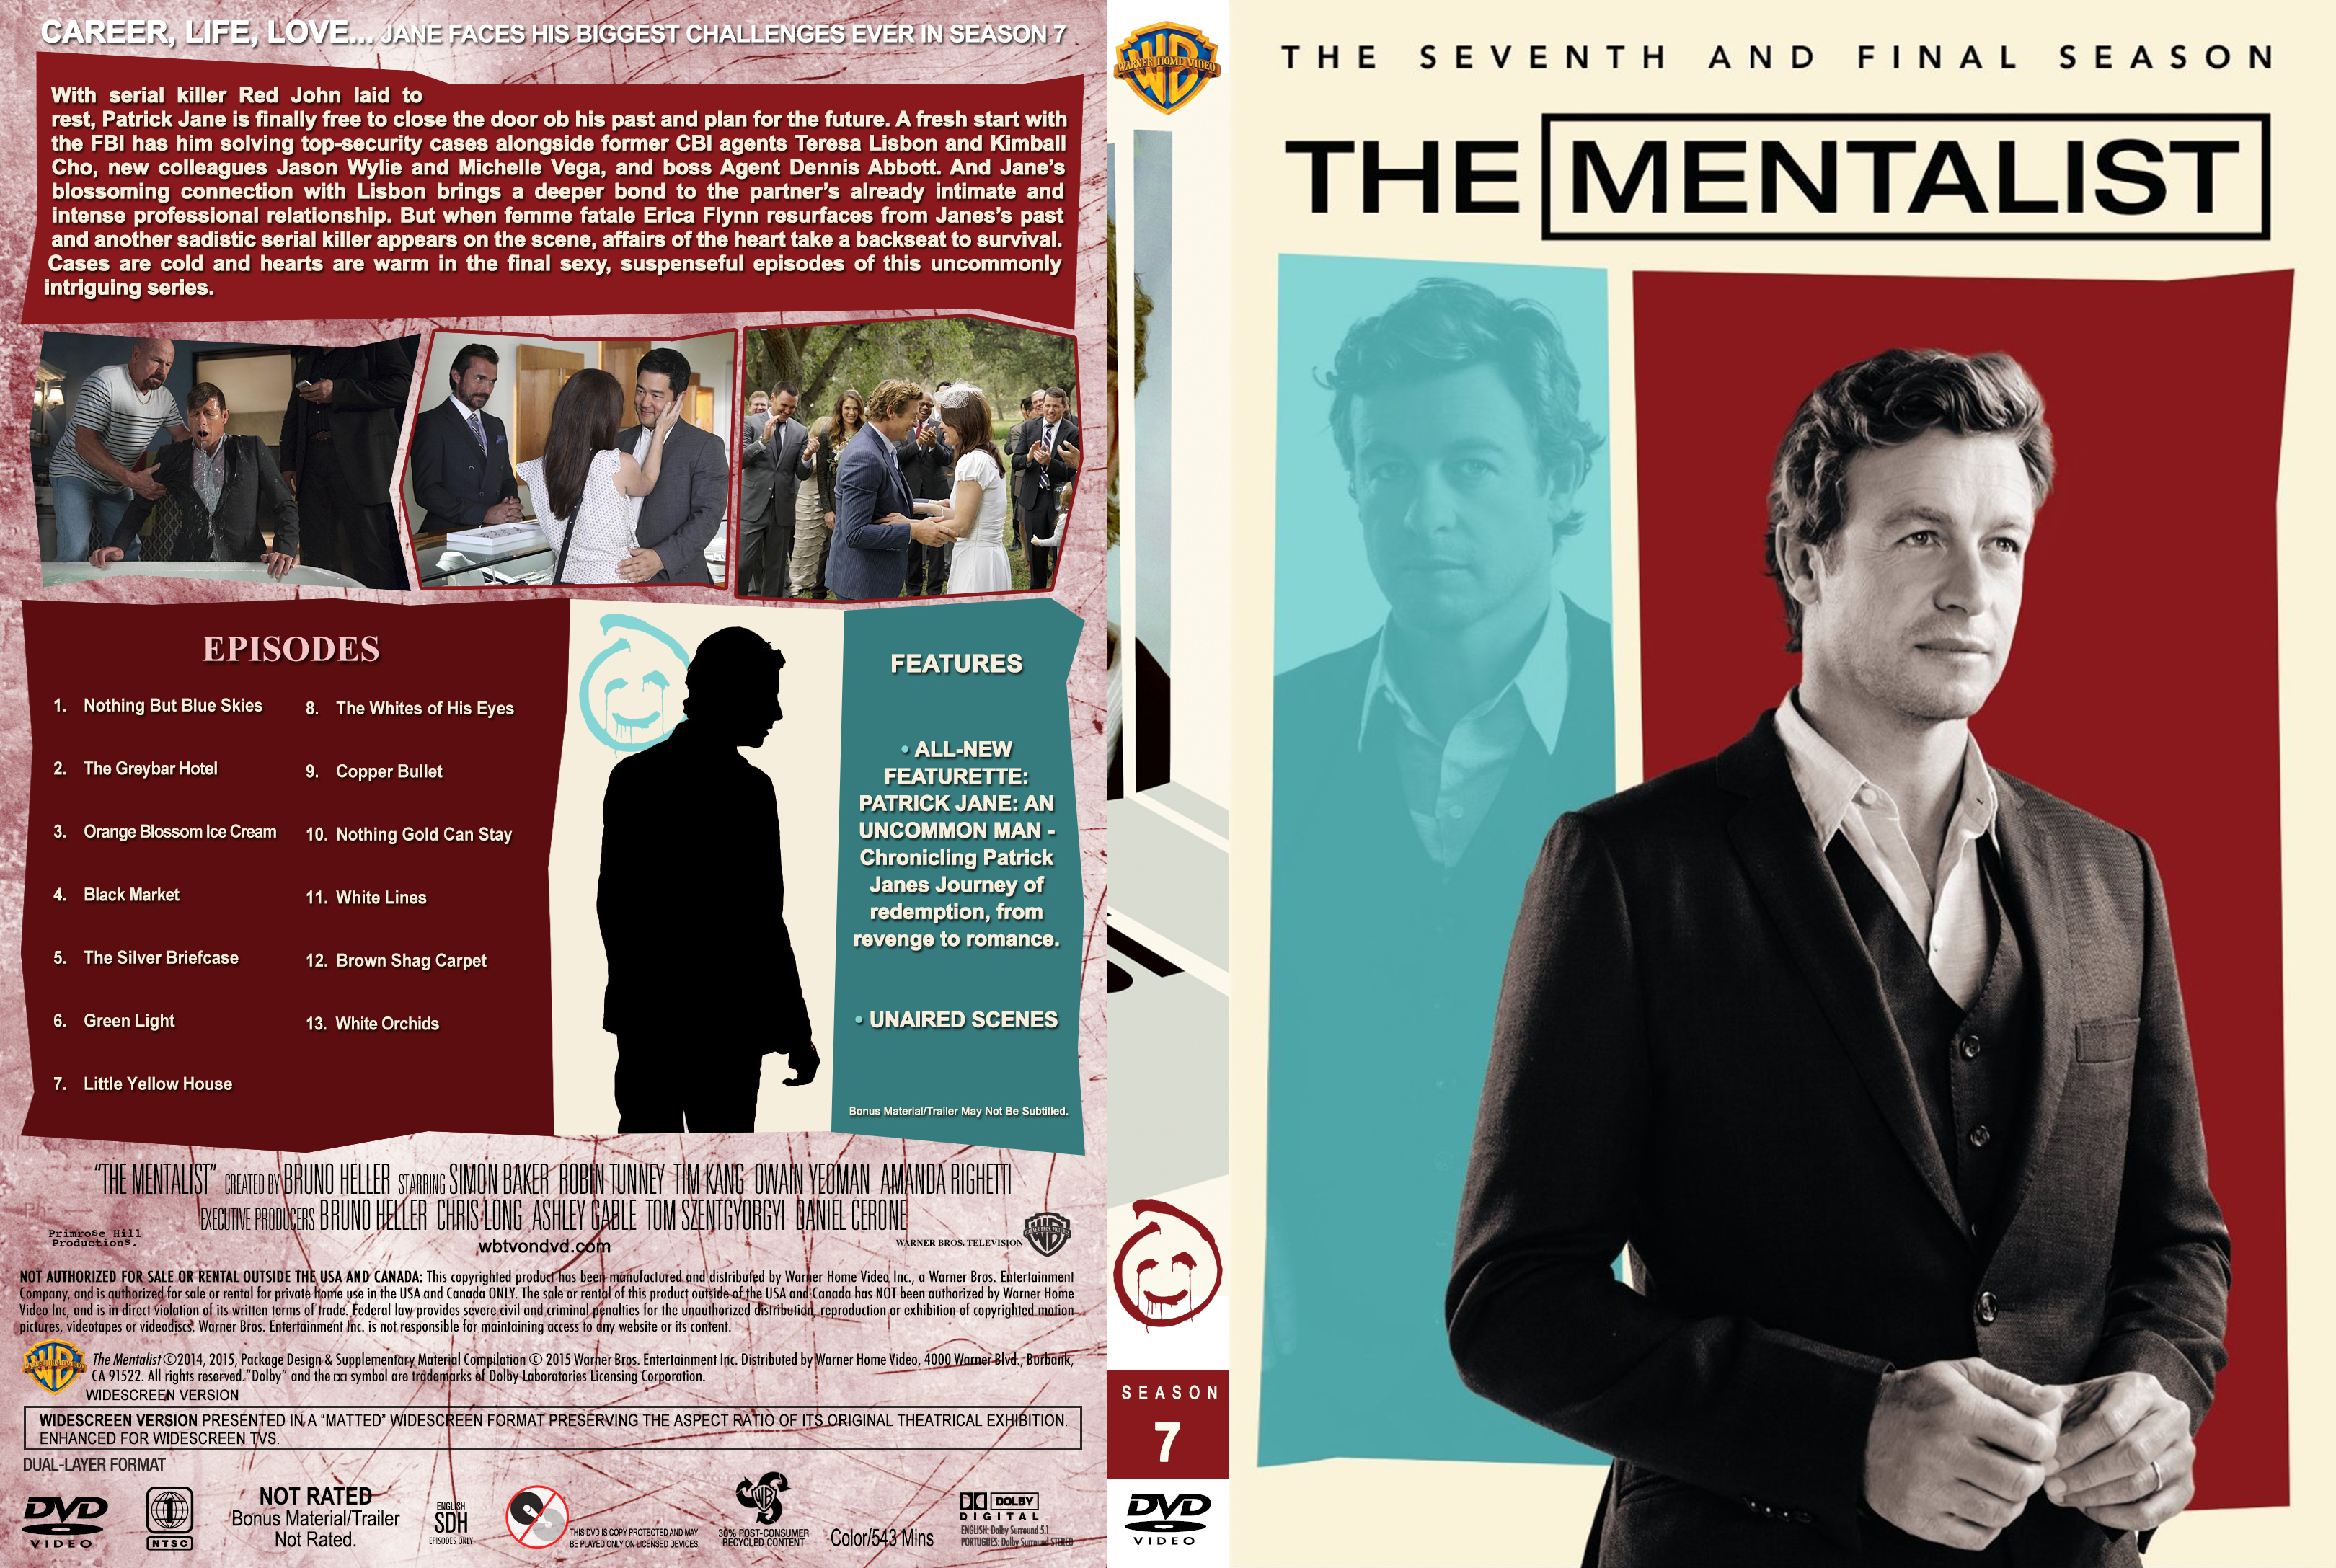 The Mentalist – Season 7 (part of a spanning) Covers | Dvd